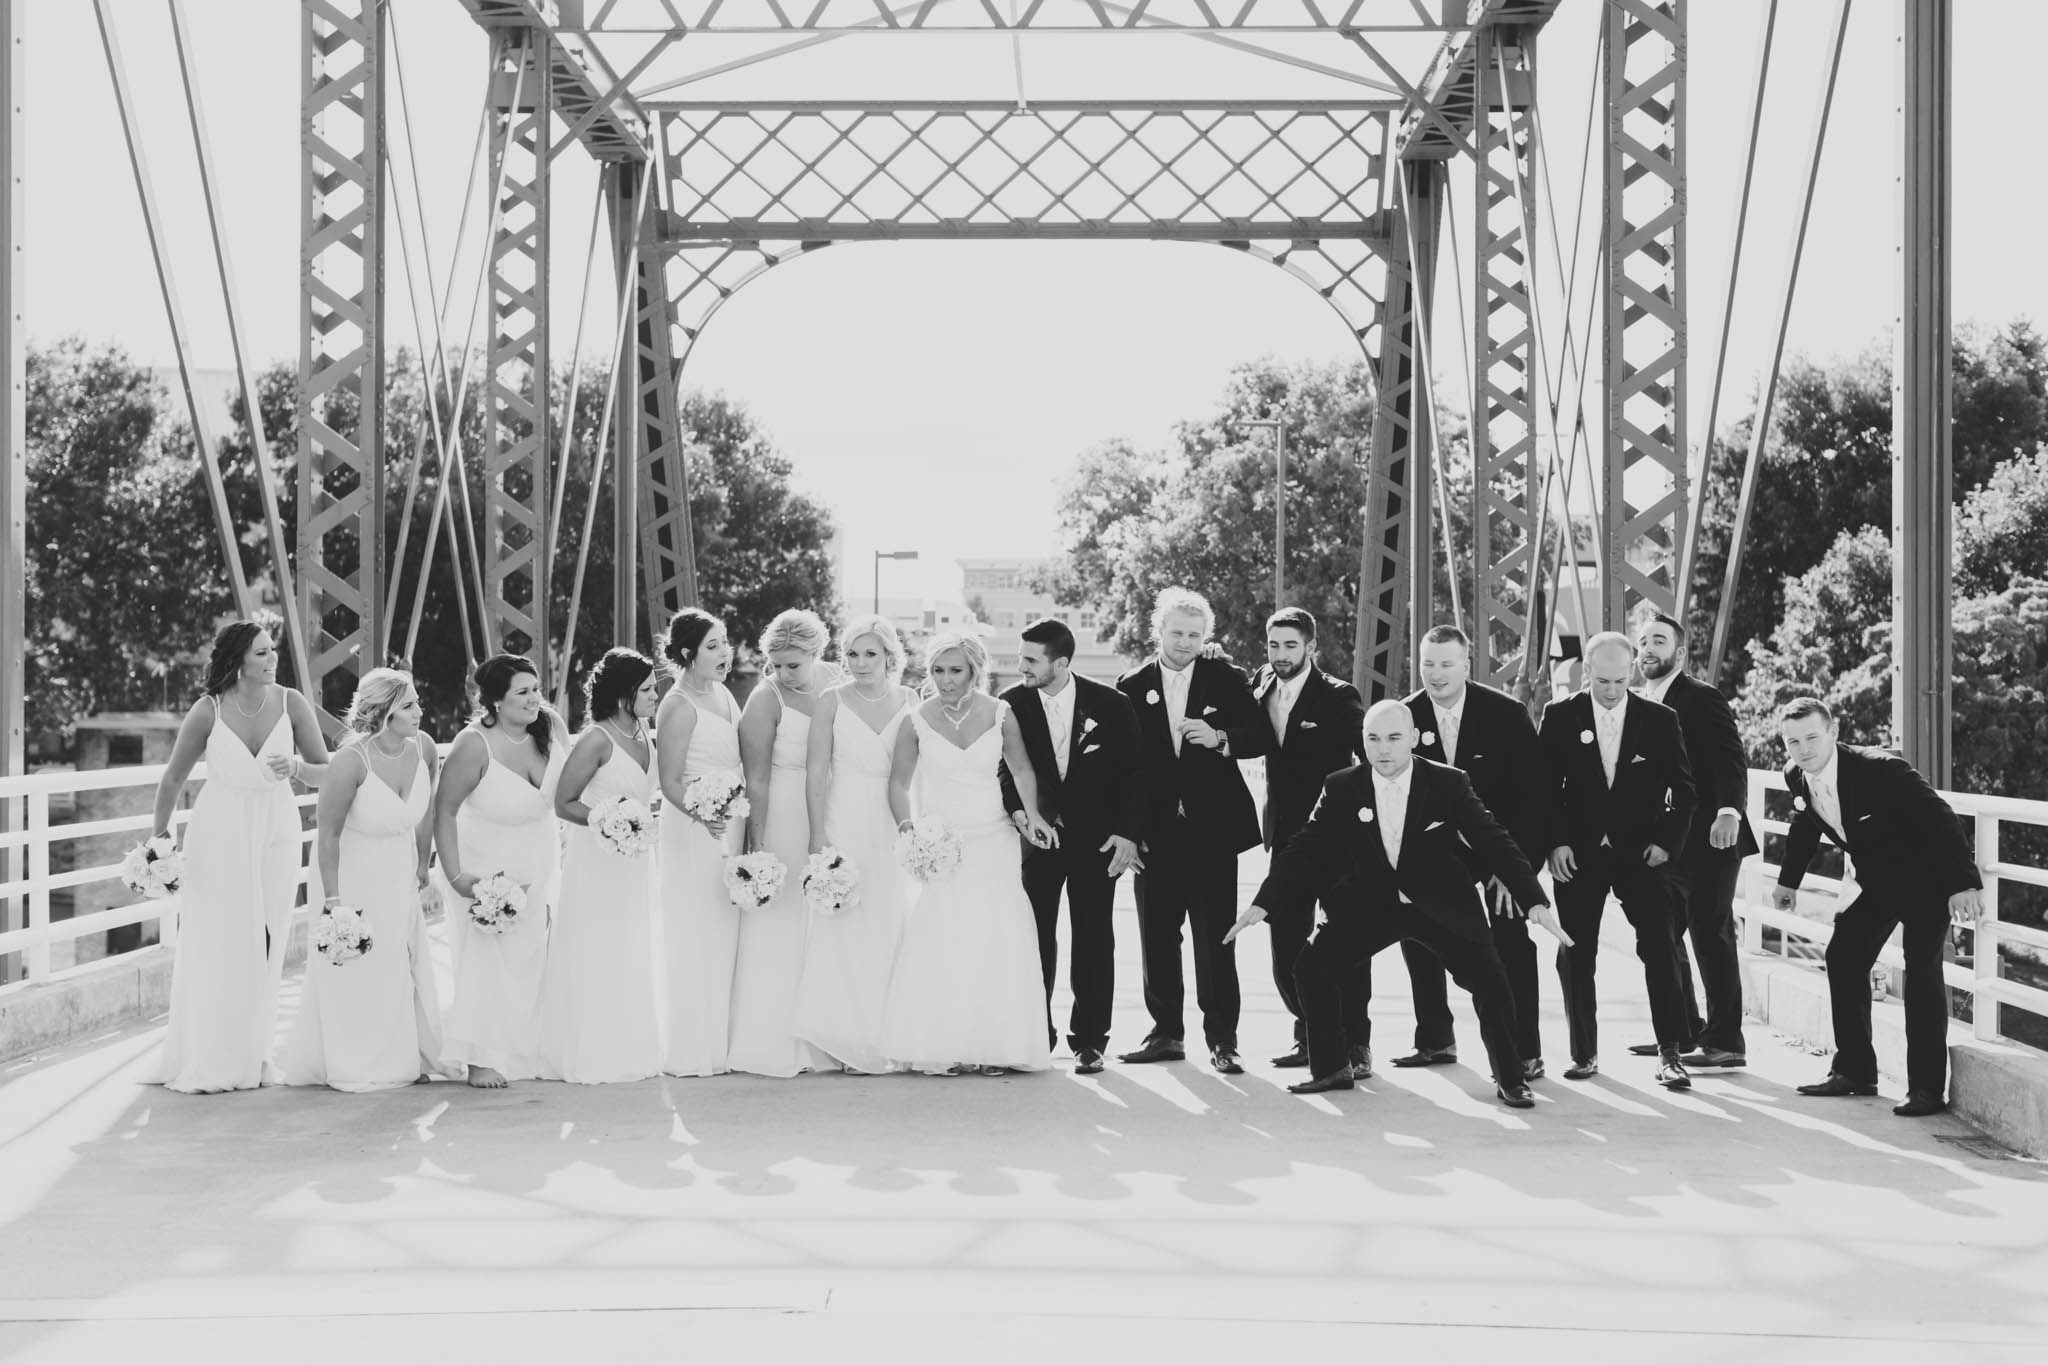 Jillian VanZytveld Photography - Grand Rapids Lifestyle Wedding Photography - 108.jpg